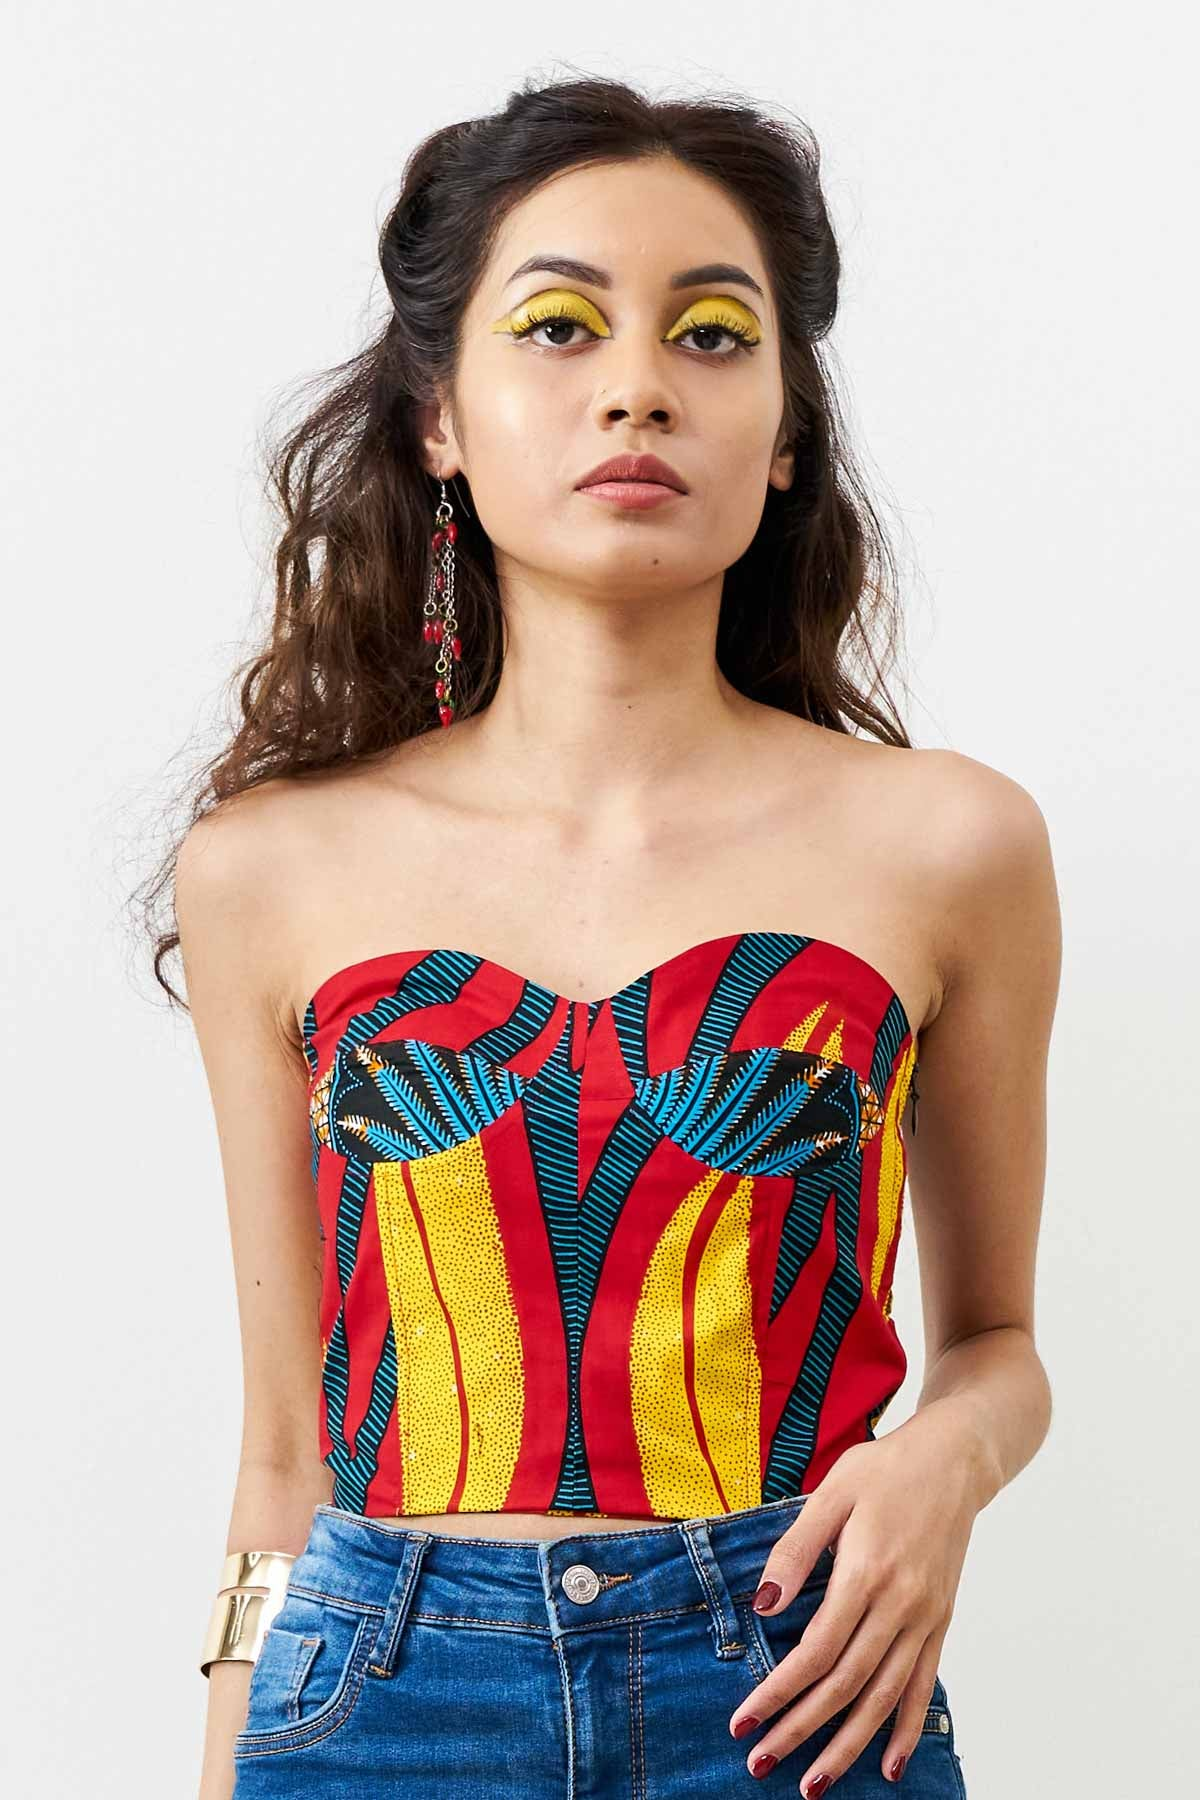 Deka Medley Corset - Blue/Red/Yellow